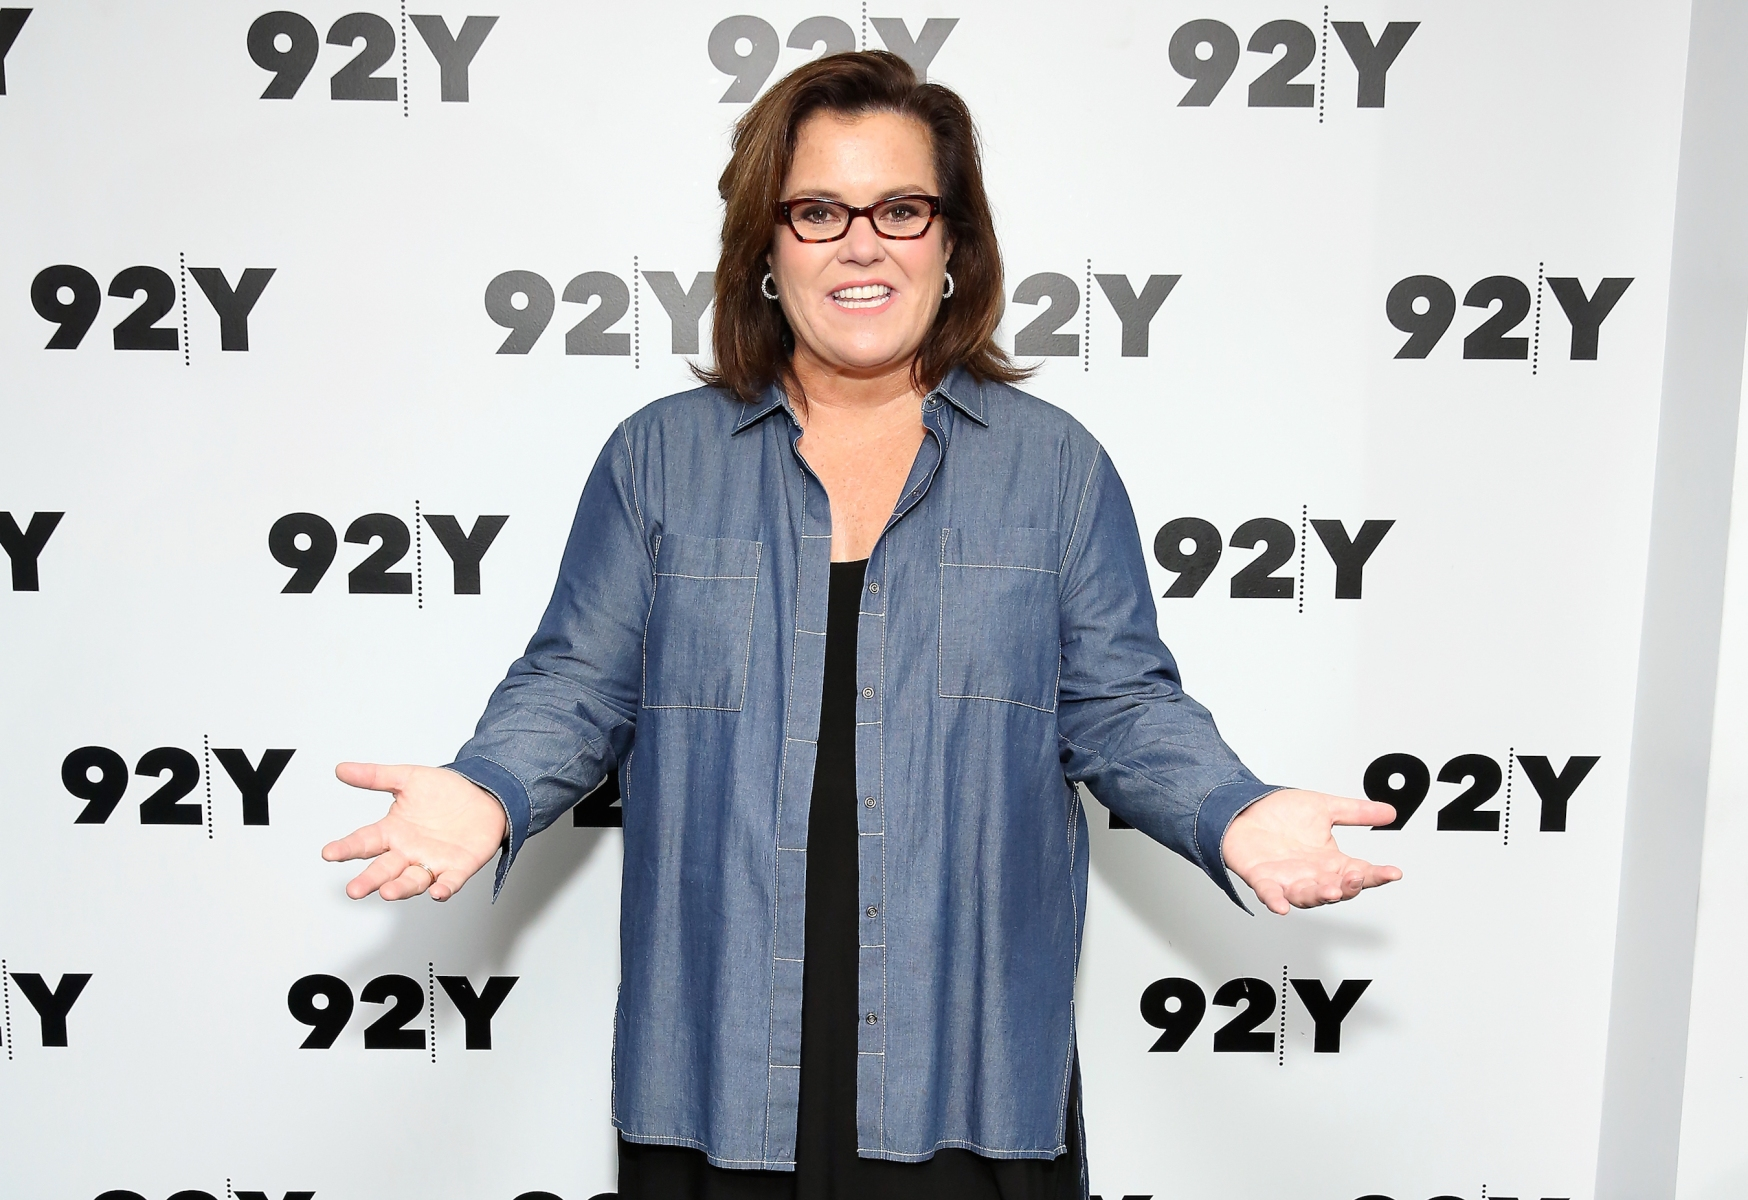 """Actress, comedian and author Rosie O'Donnell attends 92nd Street Y Presents Sheila Nevins & Rosie O'Donnell on May 23, 2017 in New York City. Recent reports suggest that O'Donnell is in the running to replace Julie Chen as host of """"The Talk"""" on CBS. (Photo by Monica Schipper/WireImage)"""